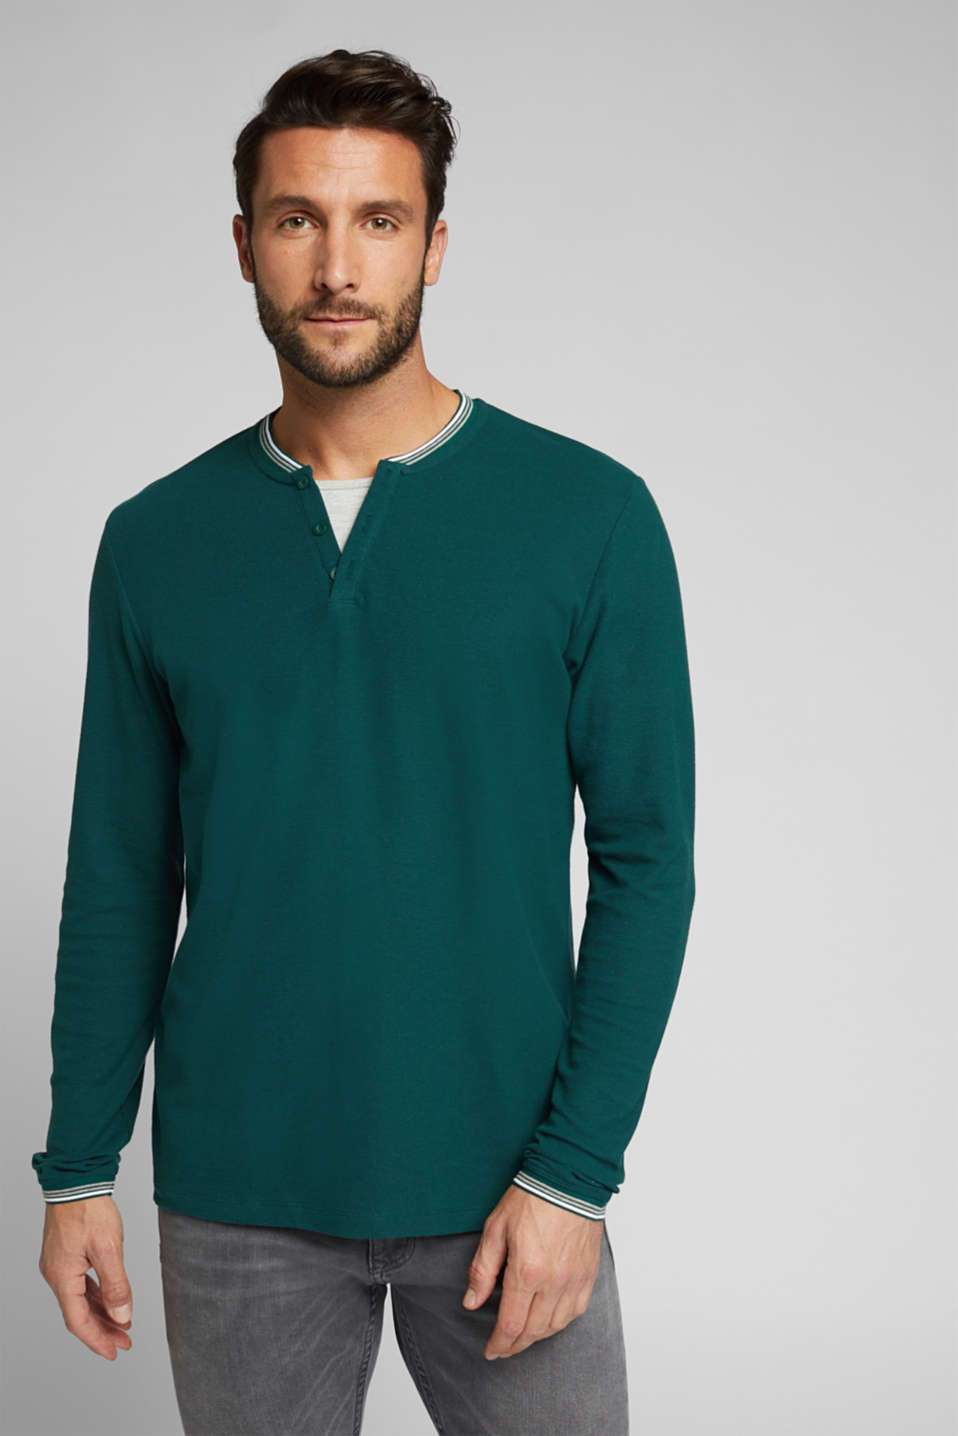 Esprit - Recycled: Long sleeve Henley top made of jersey